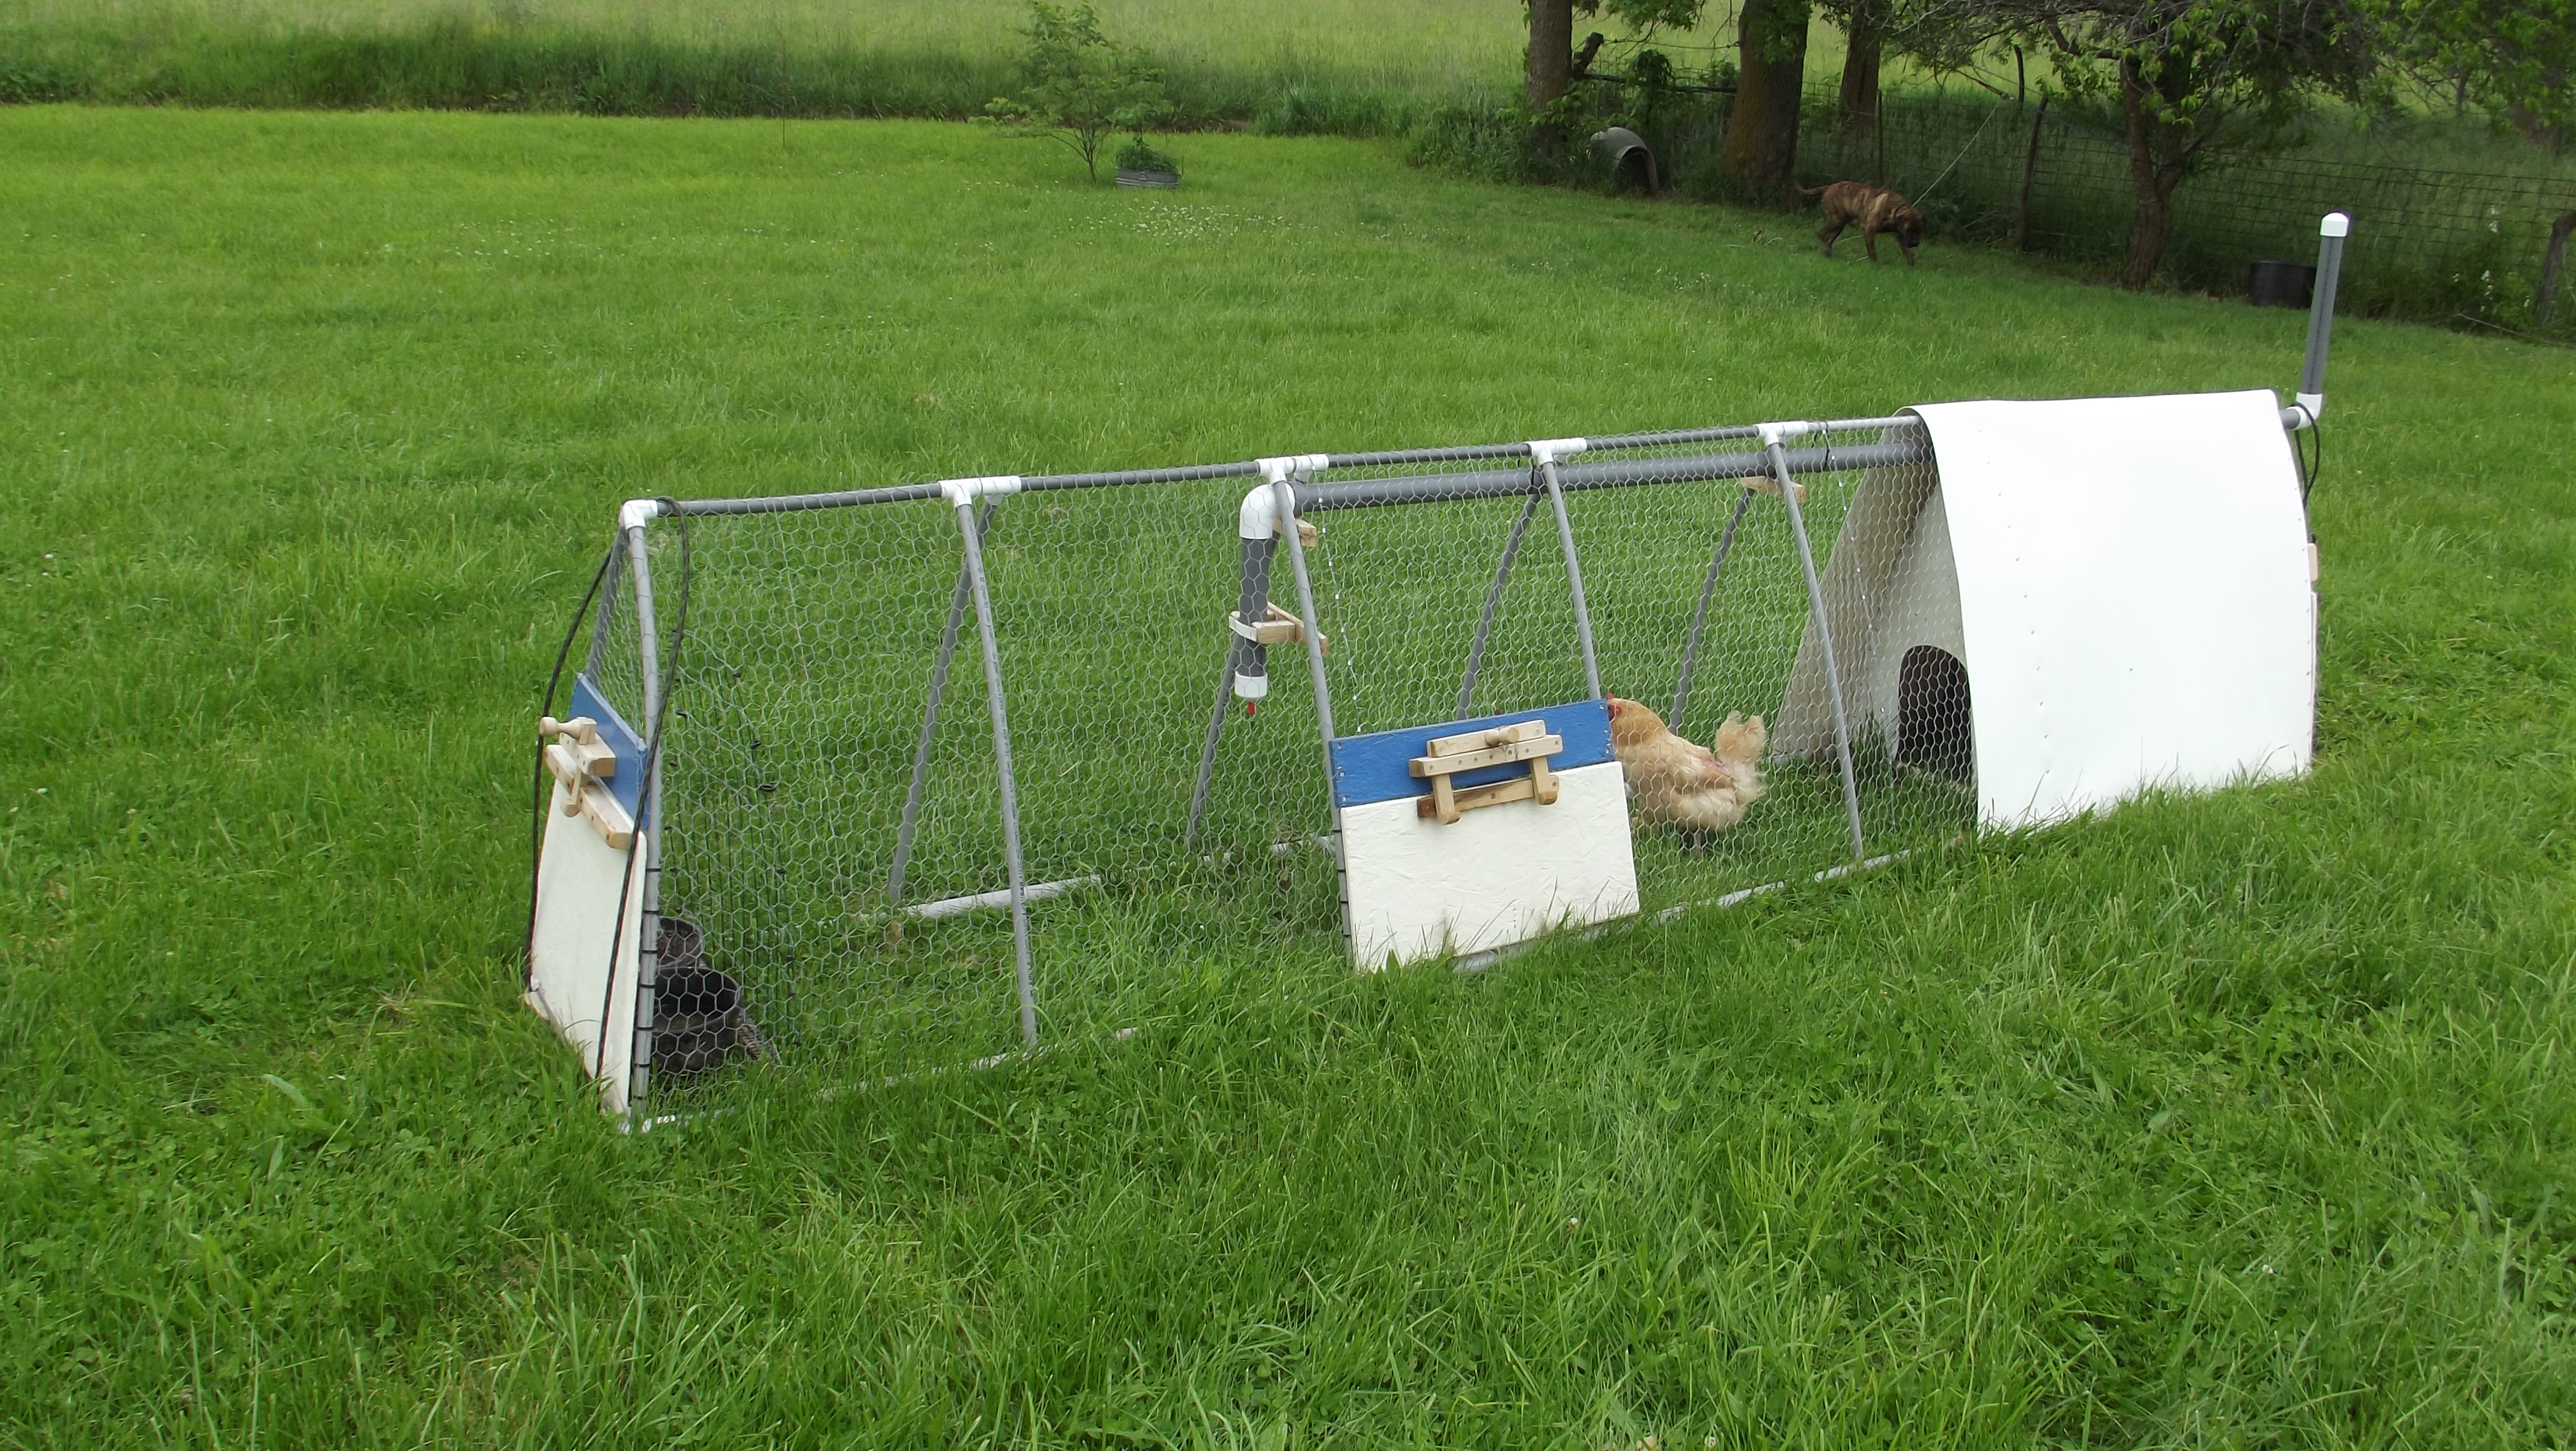 Build Pvc Chicken Tractor : The new easy to build small pvc chicken tractor row crop